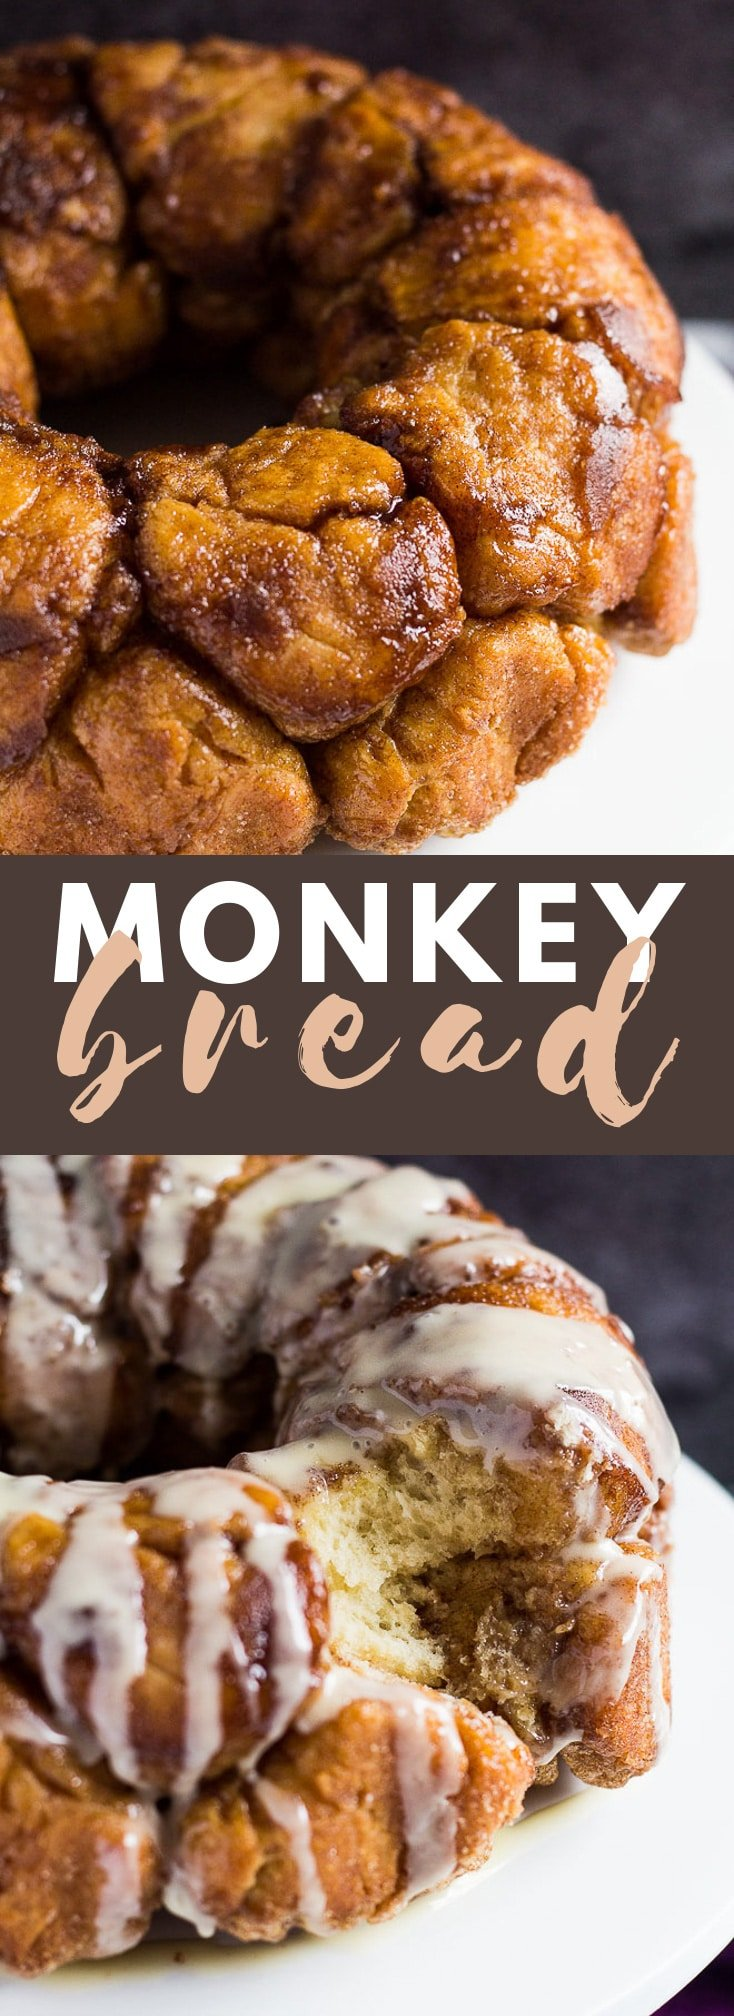 Monkey Bread - Balls of sweet bread dough coated in sugar and cinnamon, baked in a bundt pan and drizzled with a creamy glaze! #monkeybread #breadrecipes